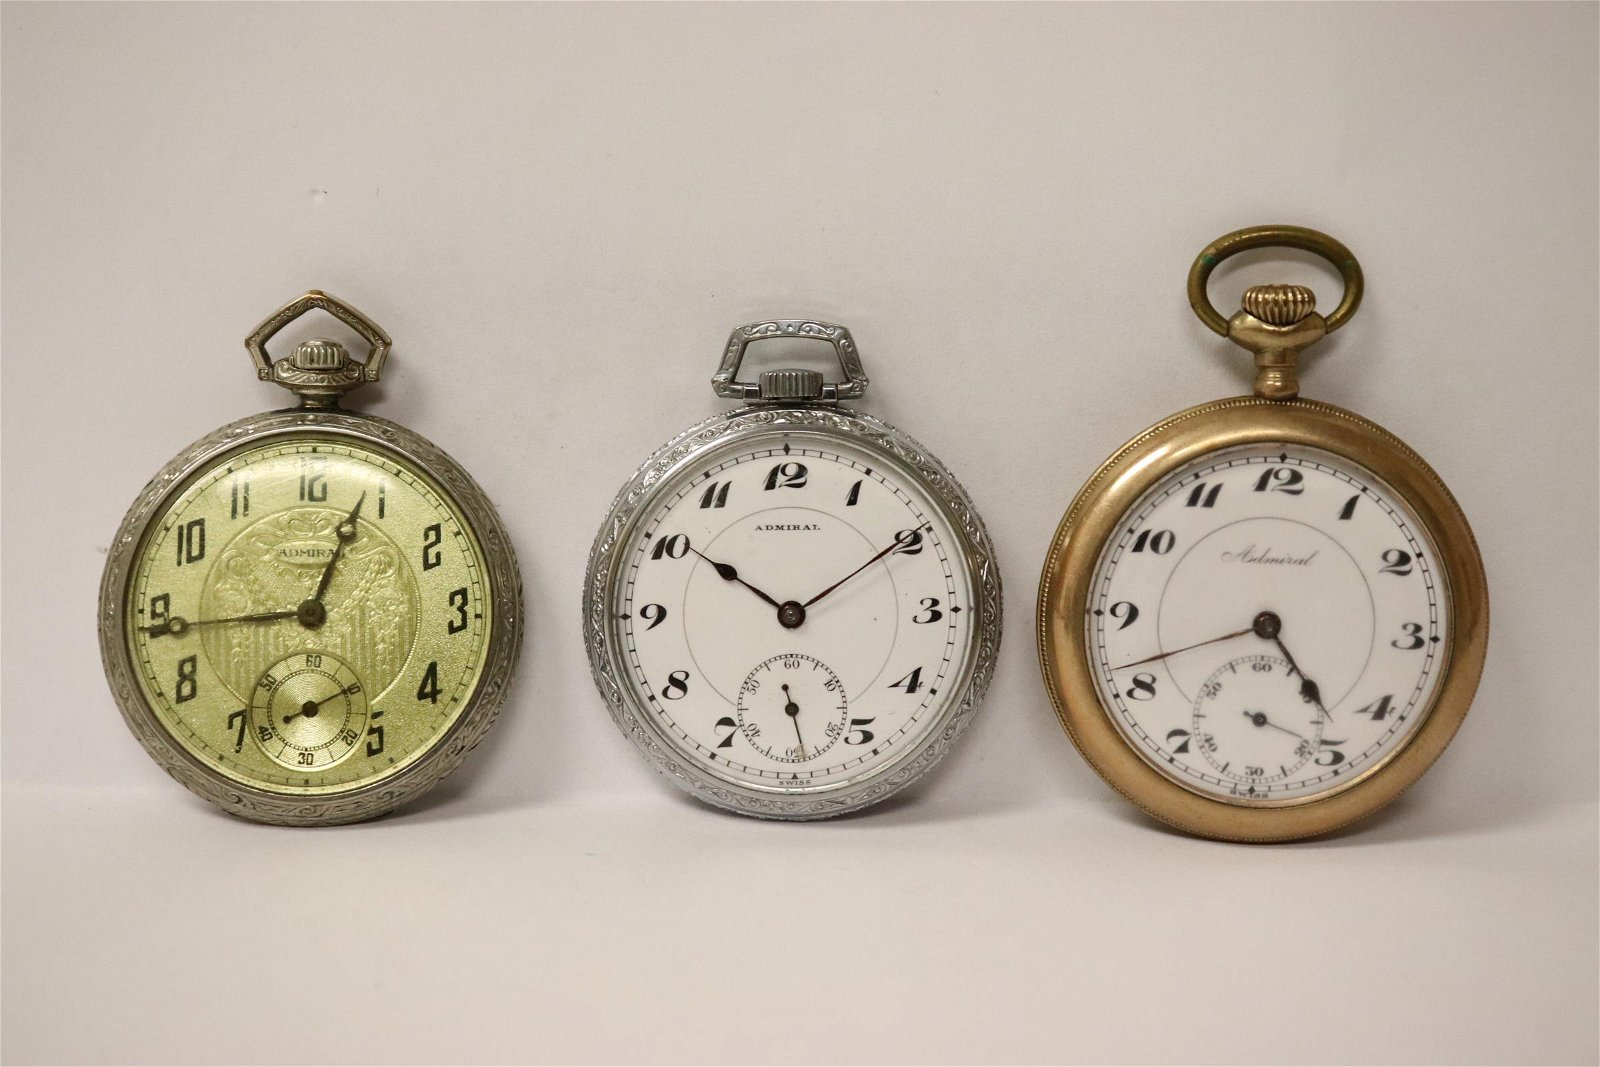 3 Admiral pocket watches